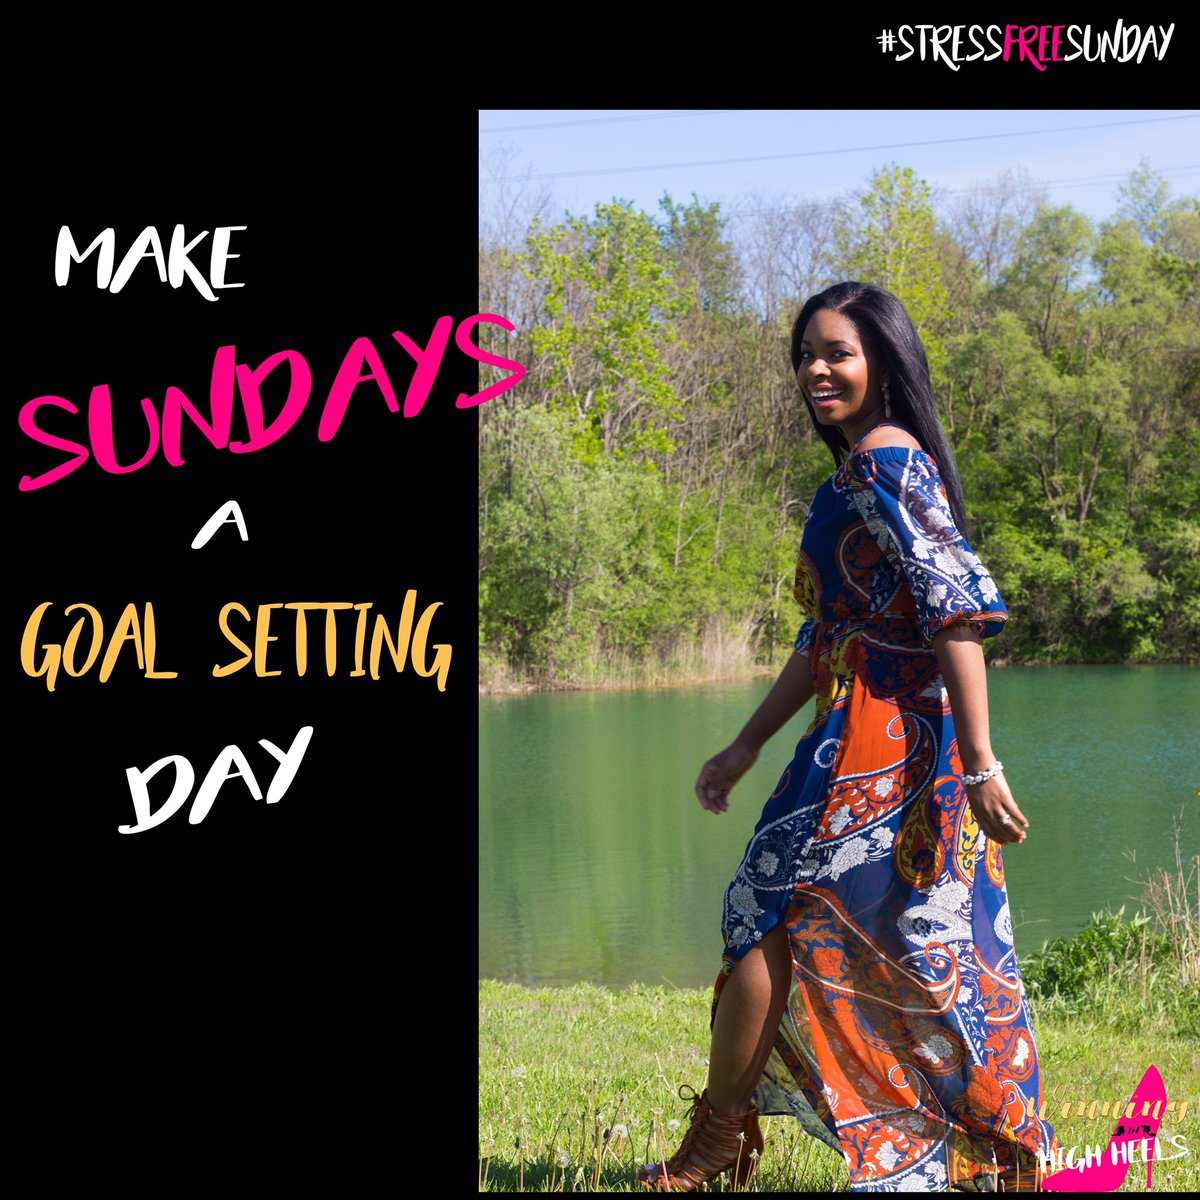 #Stressfreesunday: One of my favorite things to do on Sundays is to prepare for the week!! #goalsonsunday #goalsetting #sundaymotivation<br>http://pic.twitter.com/MeDajozP2O